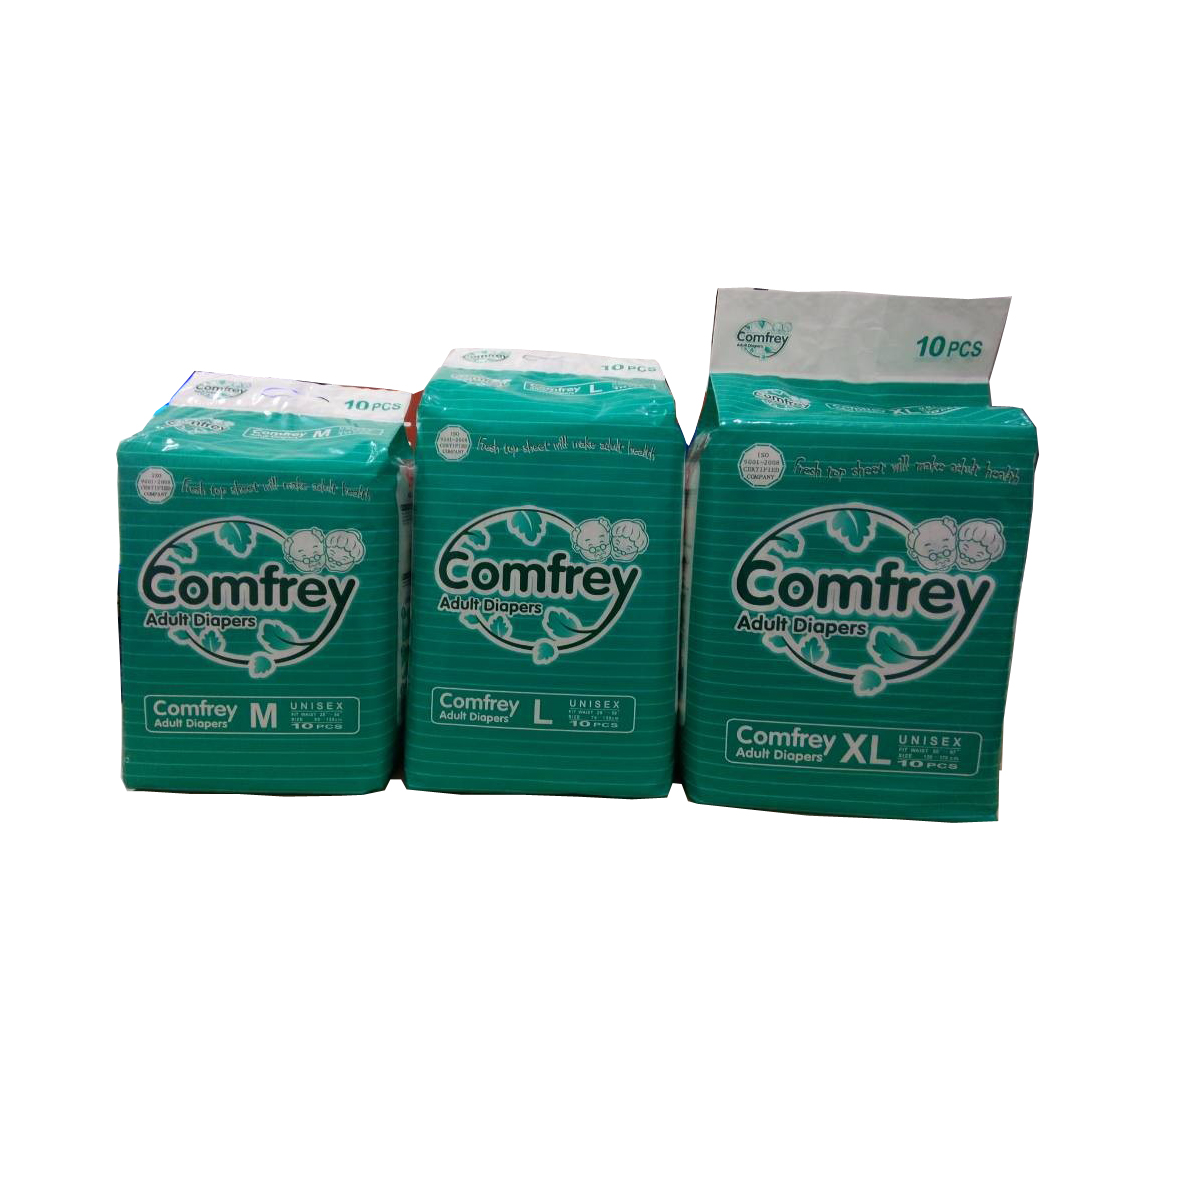 Adult Diapers & Incontinence Products for Elderly or Injured